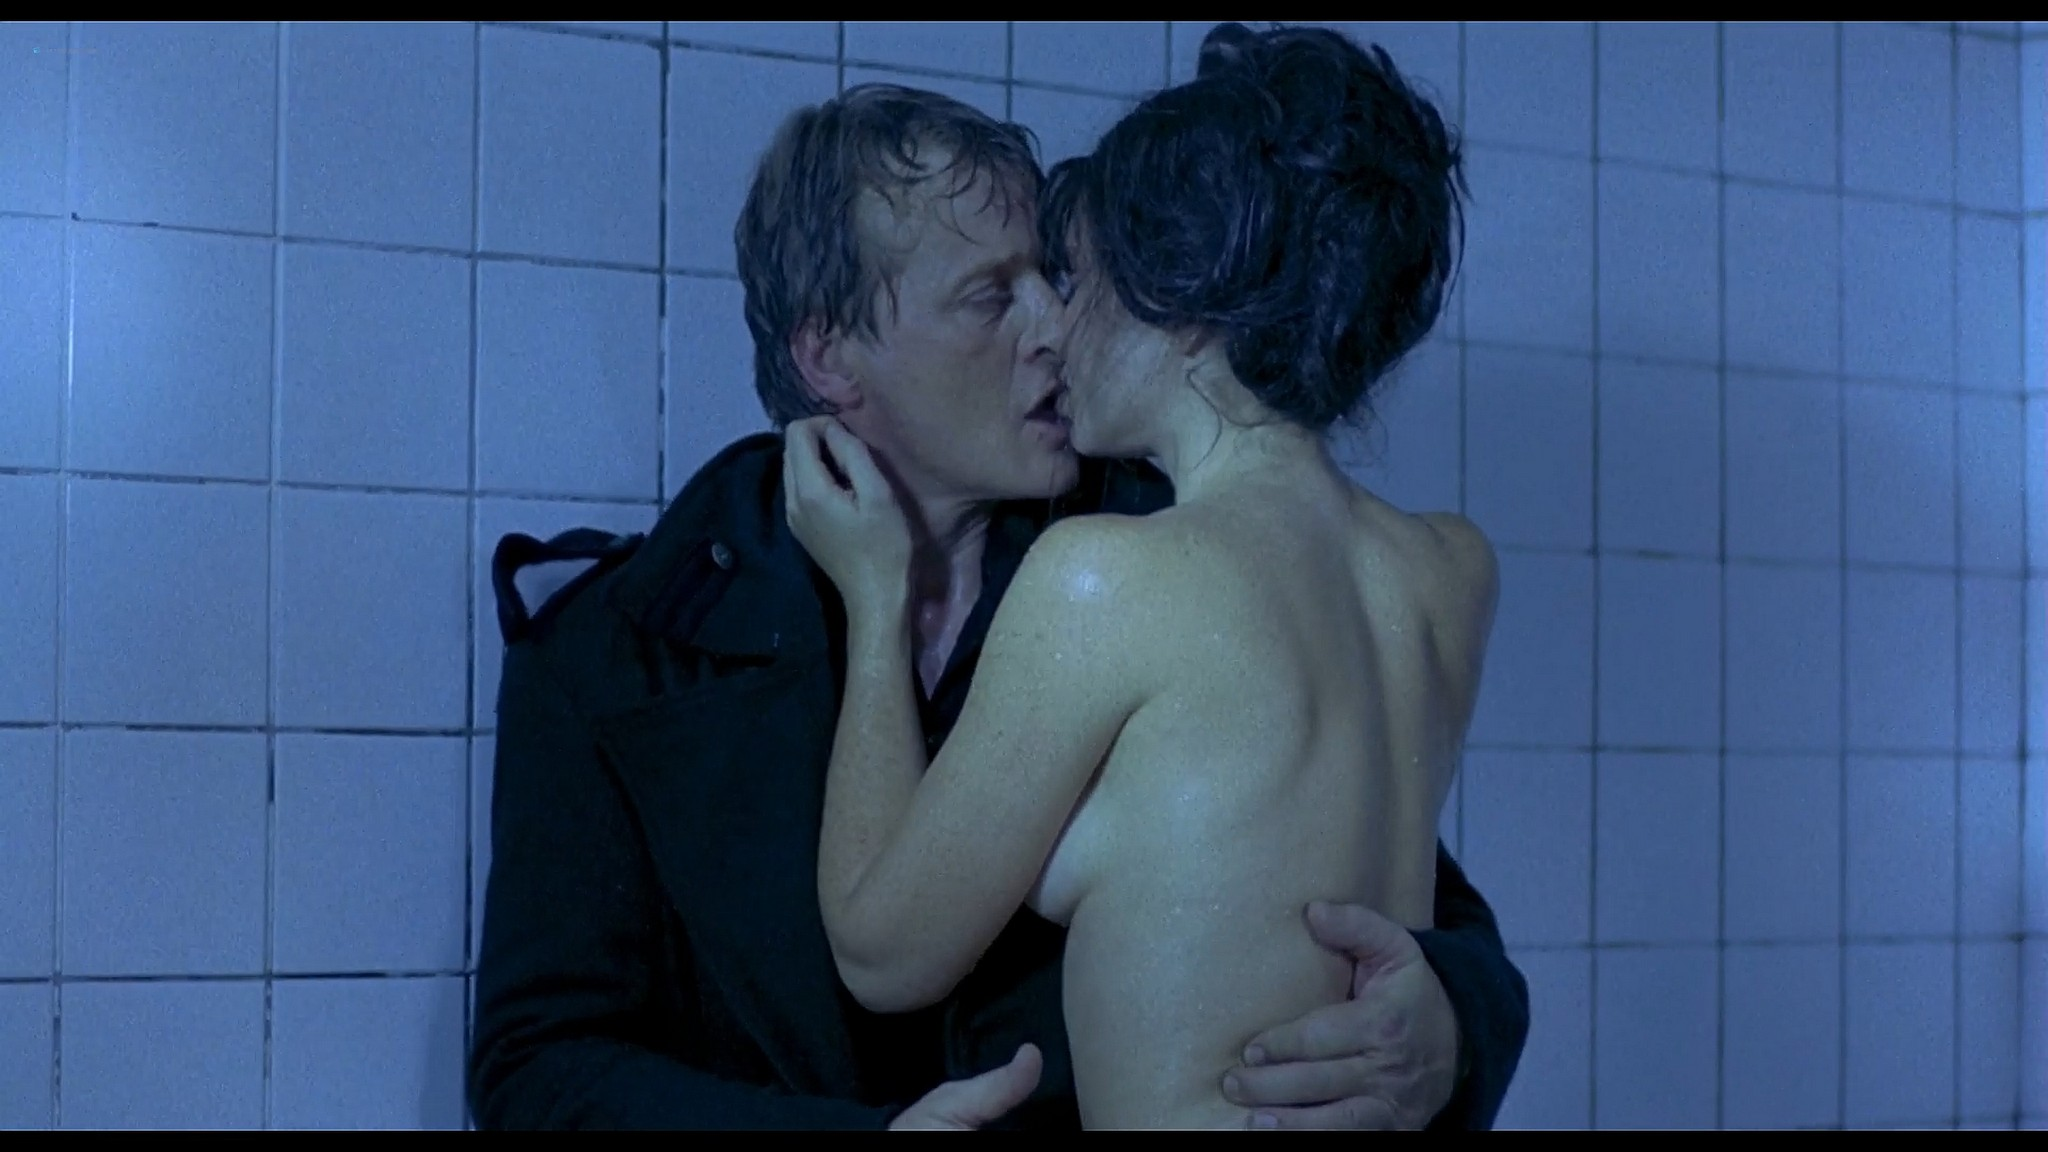 Yvonne Scio nude sex Anita Neszmenyi and others nude too Redline 1997 1080p Web 8